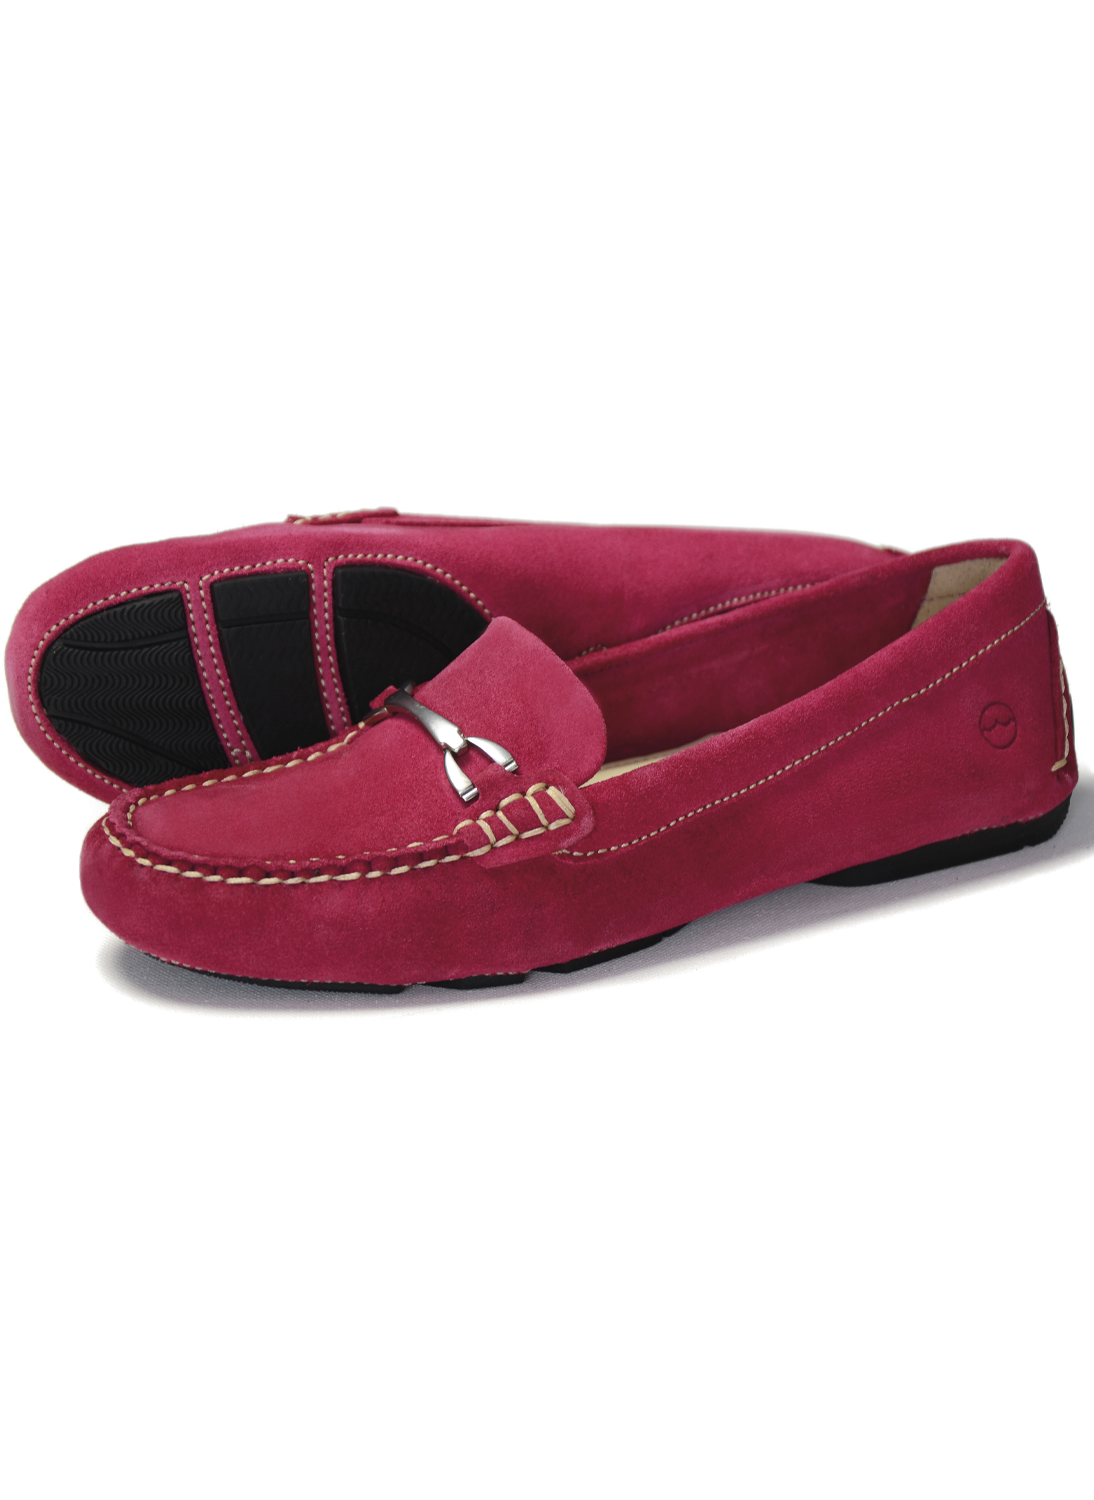 7814167b67500 Orca Bay Sorrento Red Deck Shoes | Country Clothing Specialist